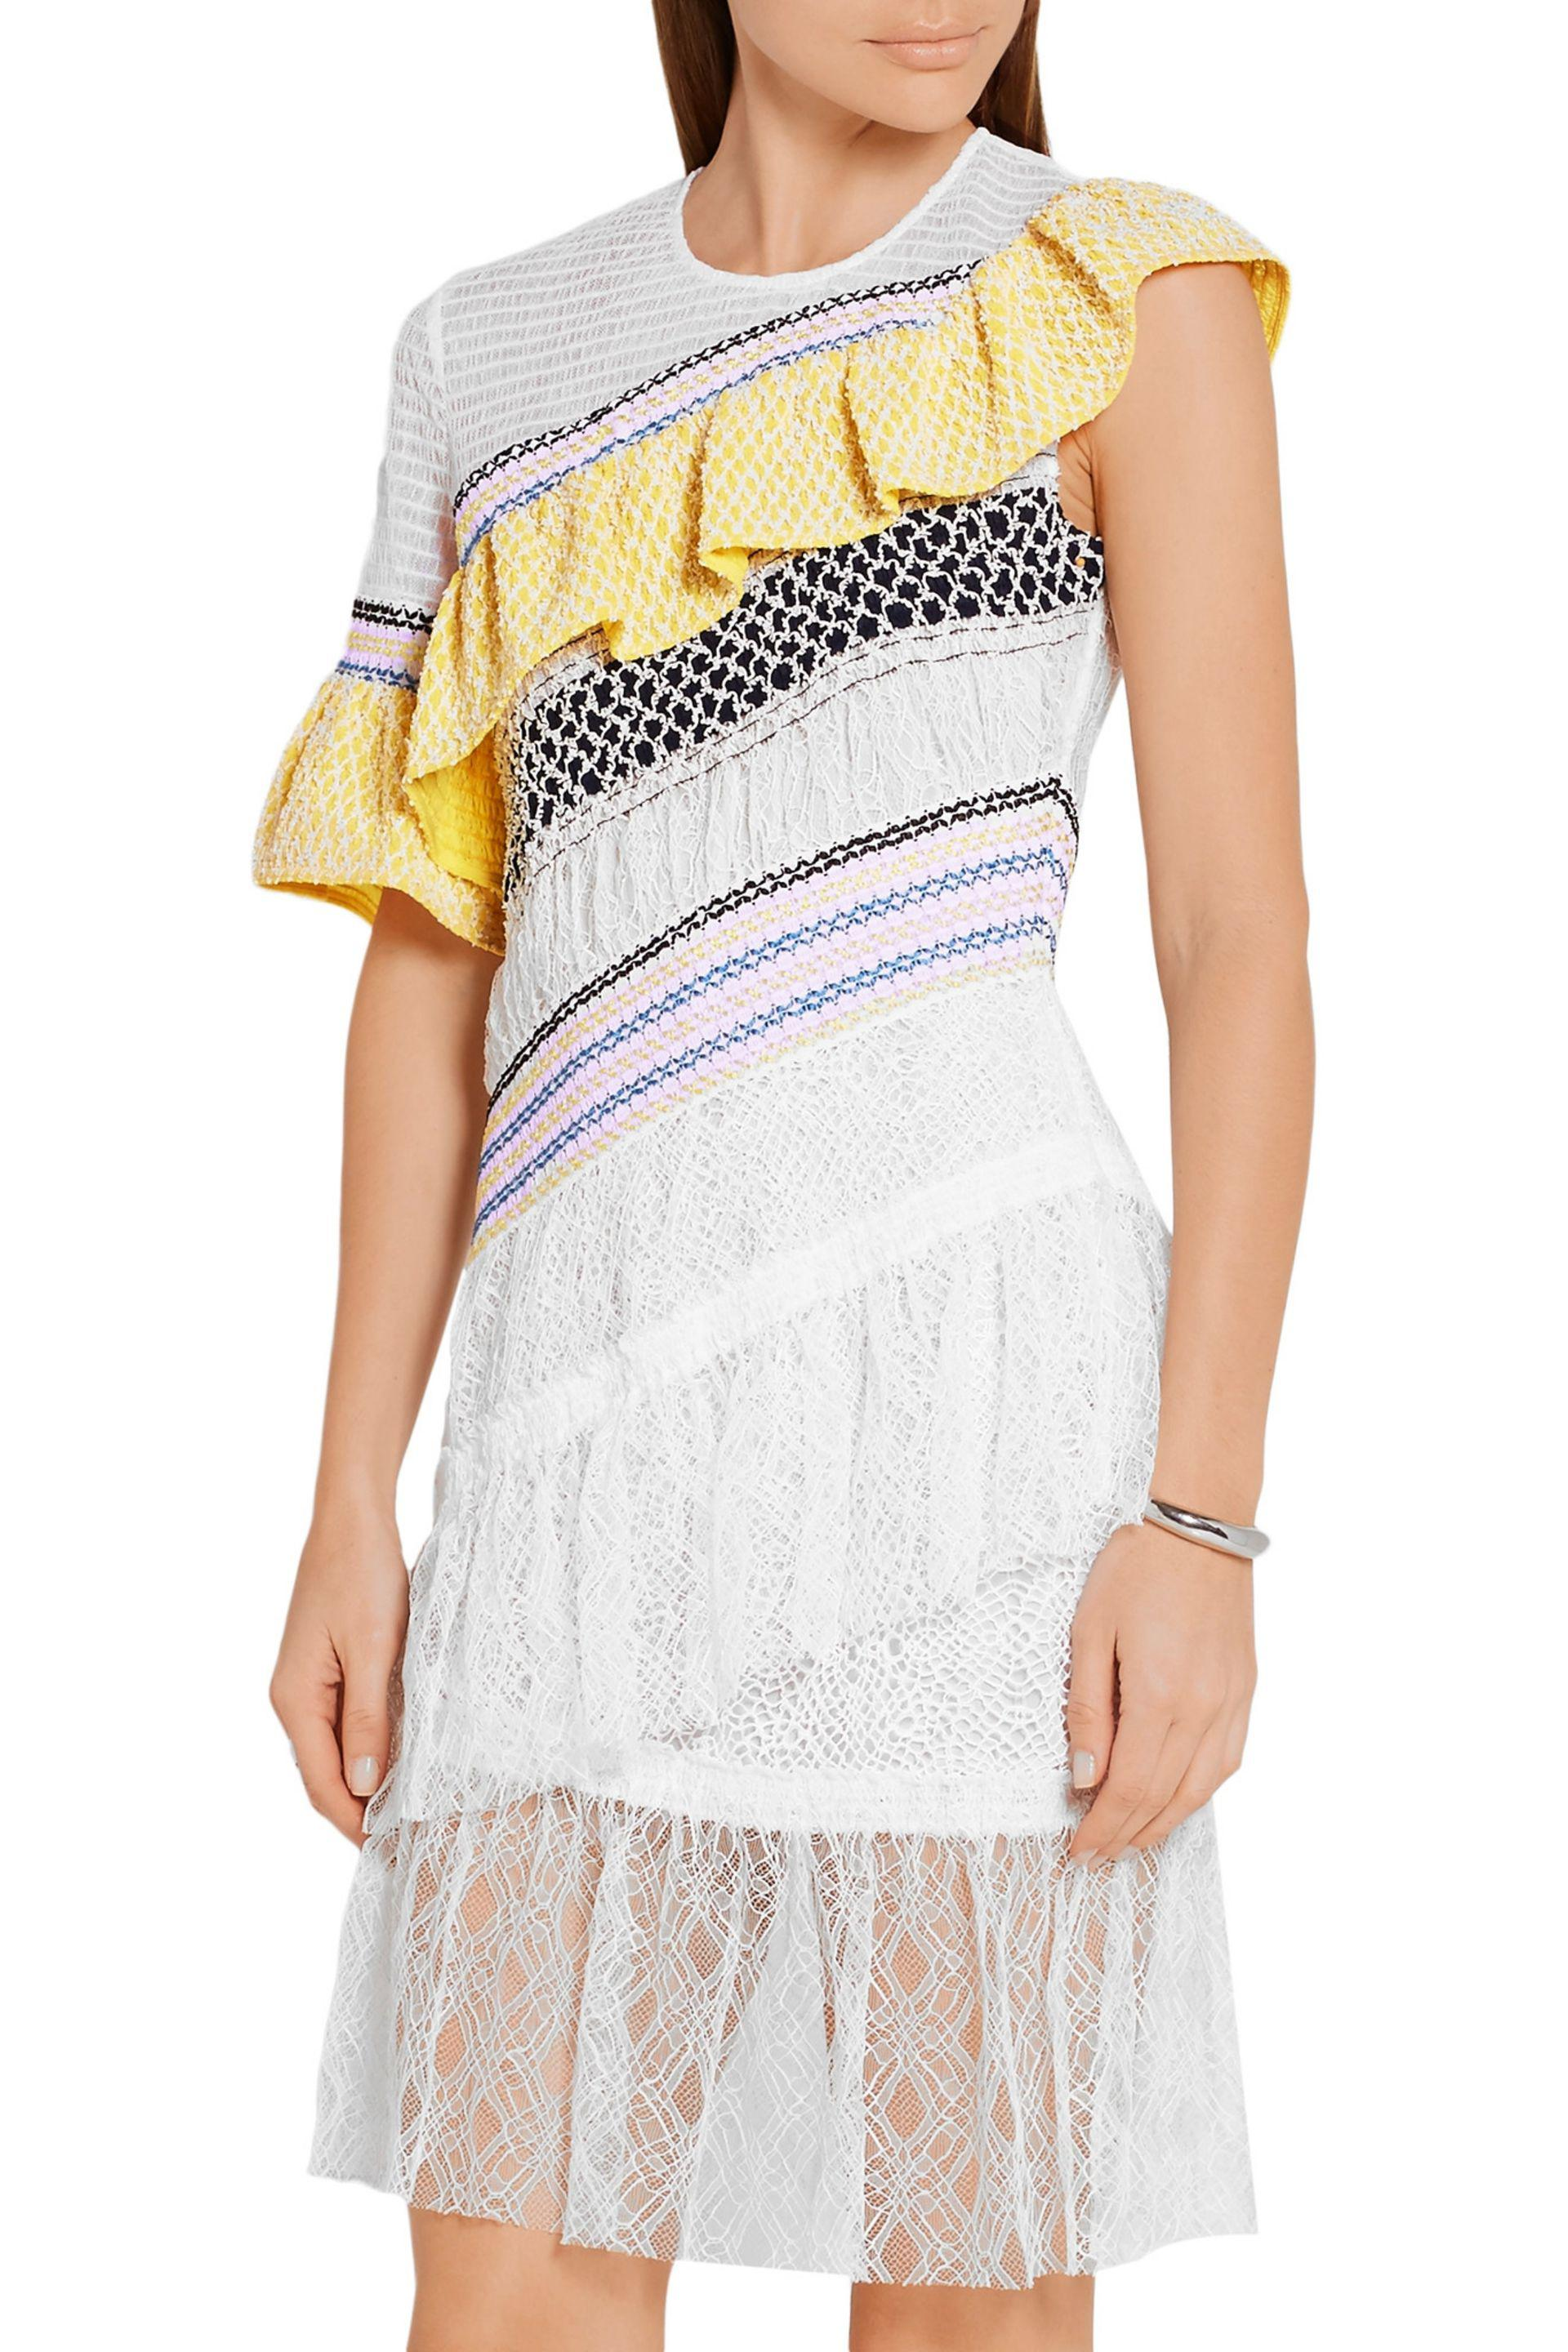 Peter Pilotto - White Octave Ruffled Tulle And Corded Lace Mini Dress -  Lyst. View Fullscreen